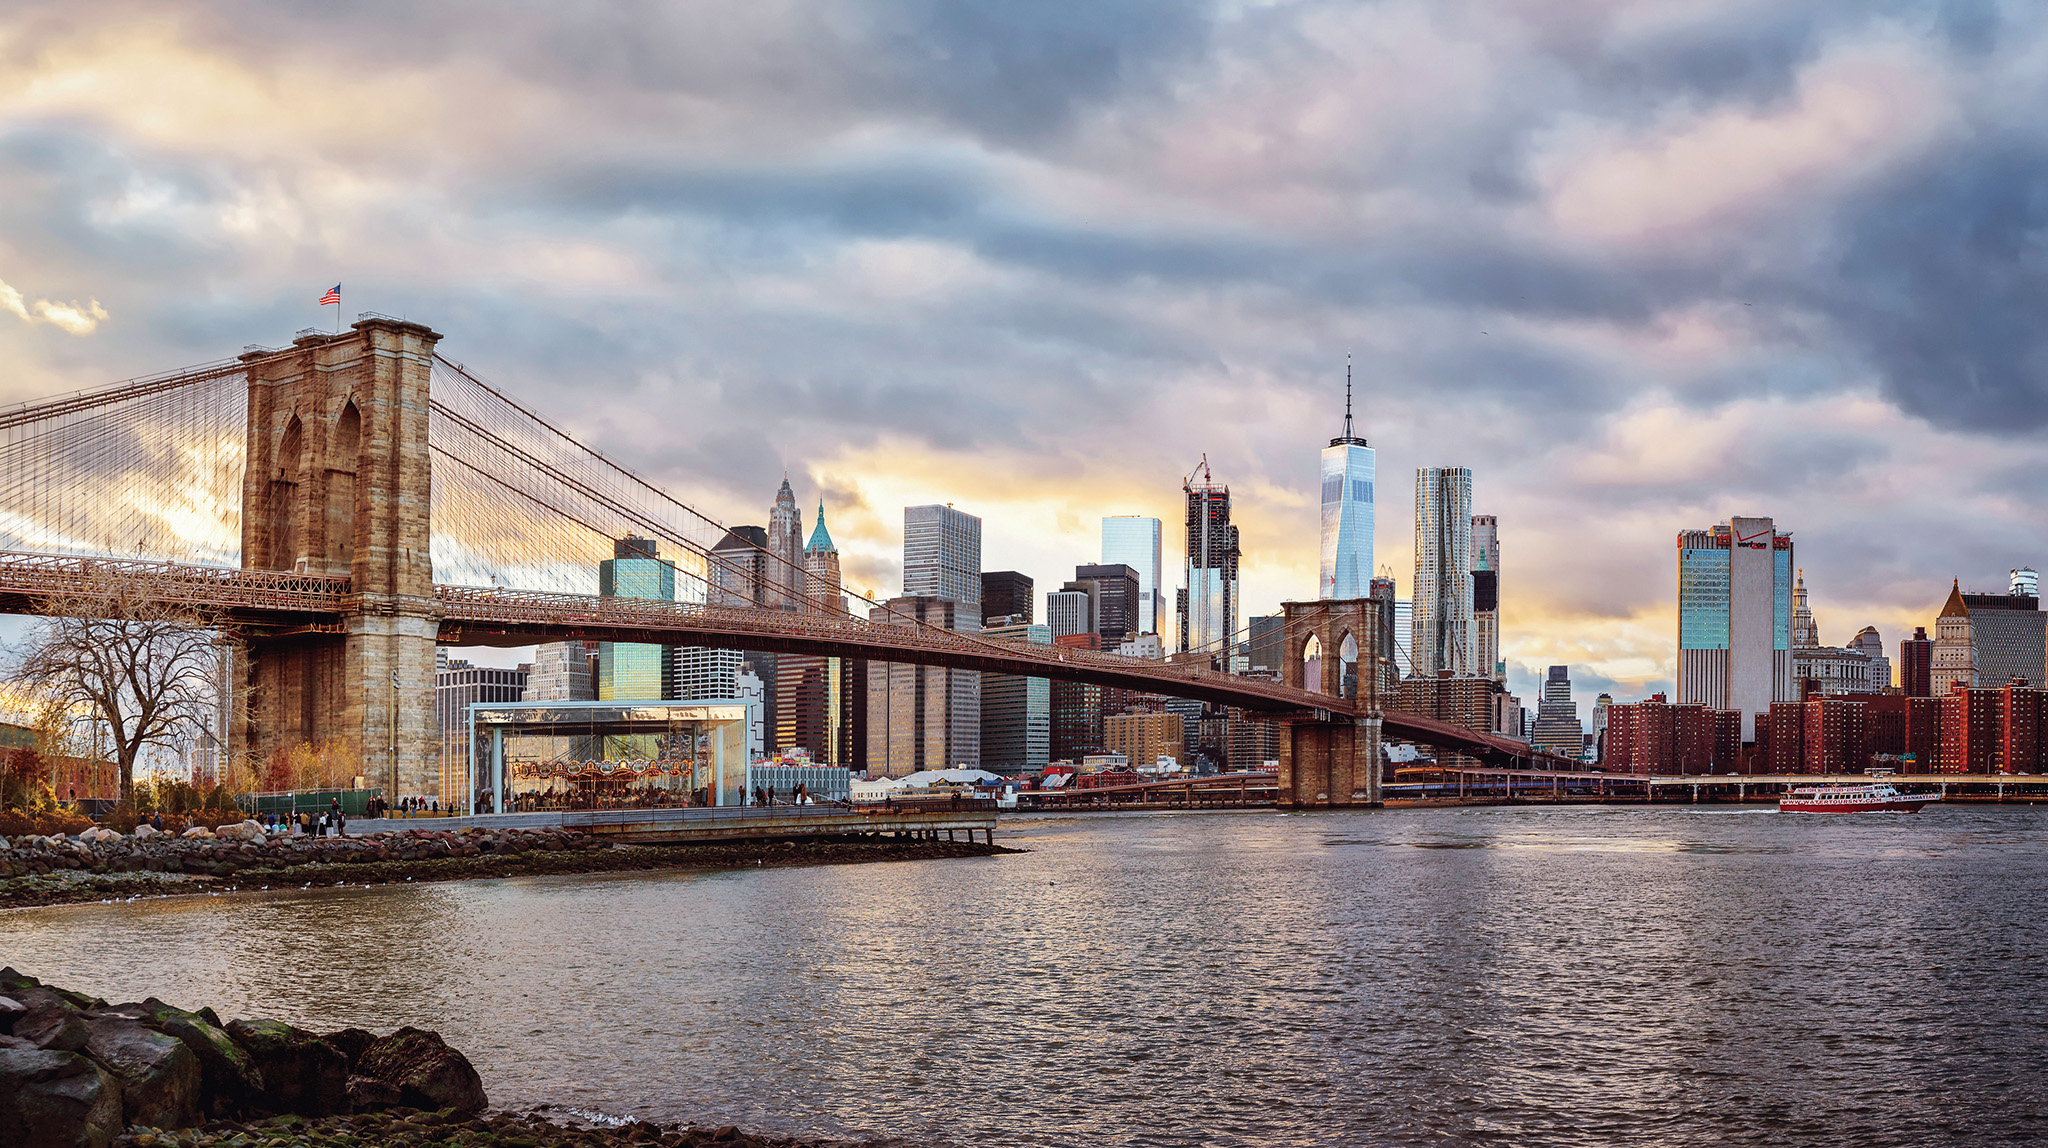 The Brooklyn Bridge and New York Manhattan Skyline at sunset viewed from DUMBO - Photo by Paul Tadday